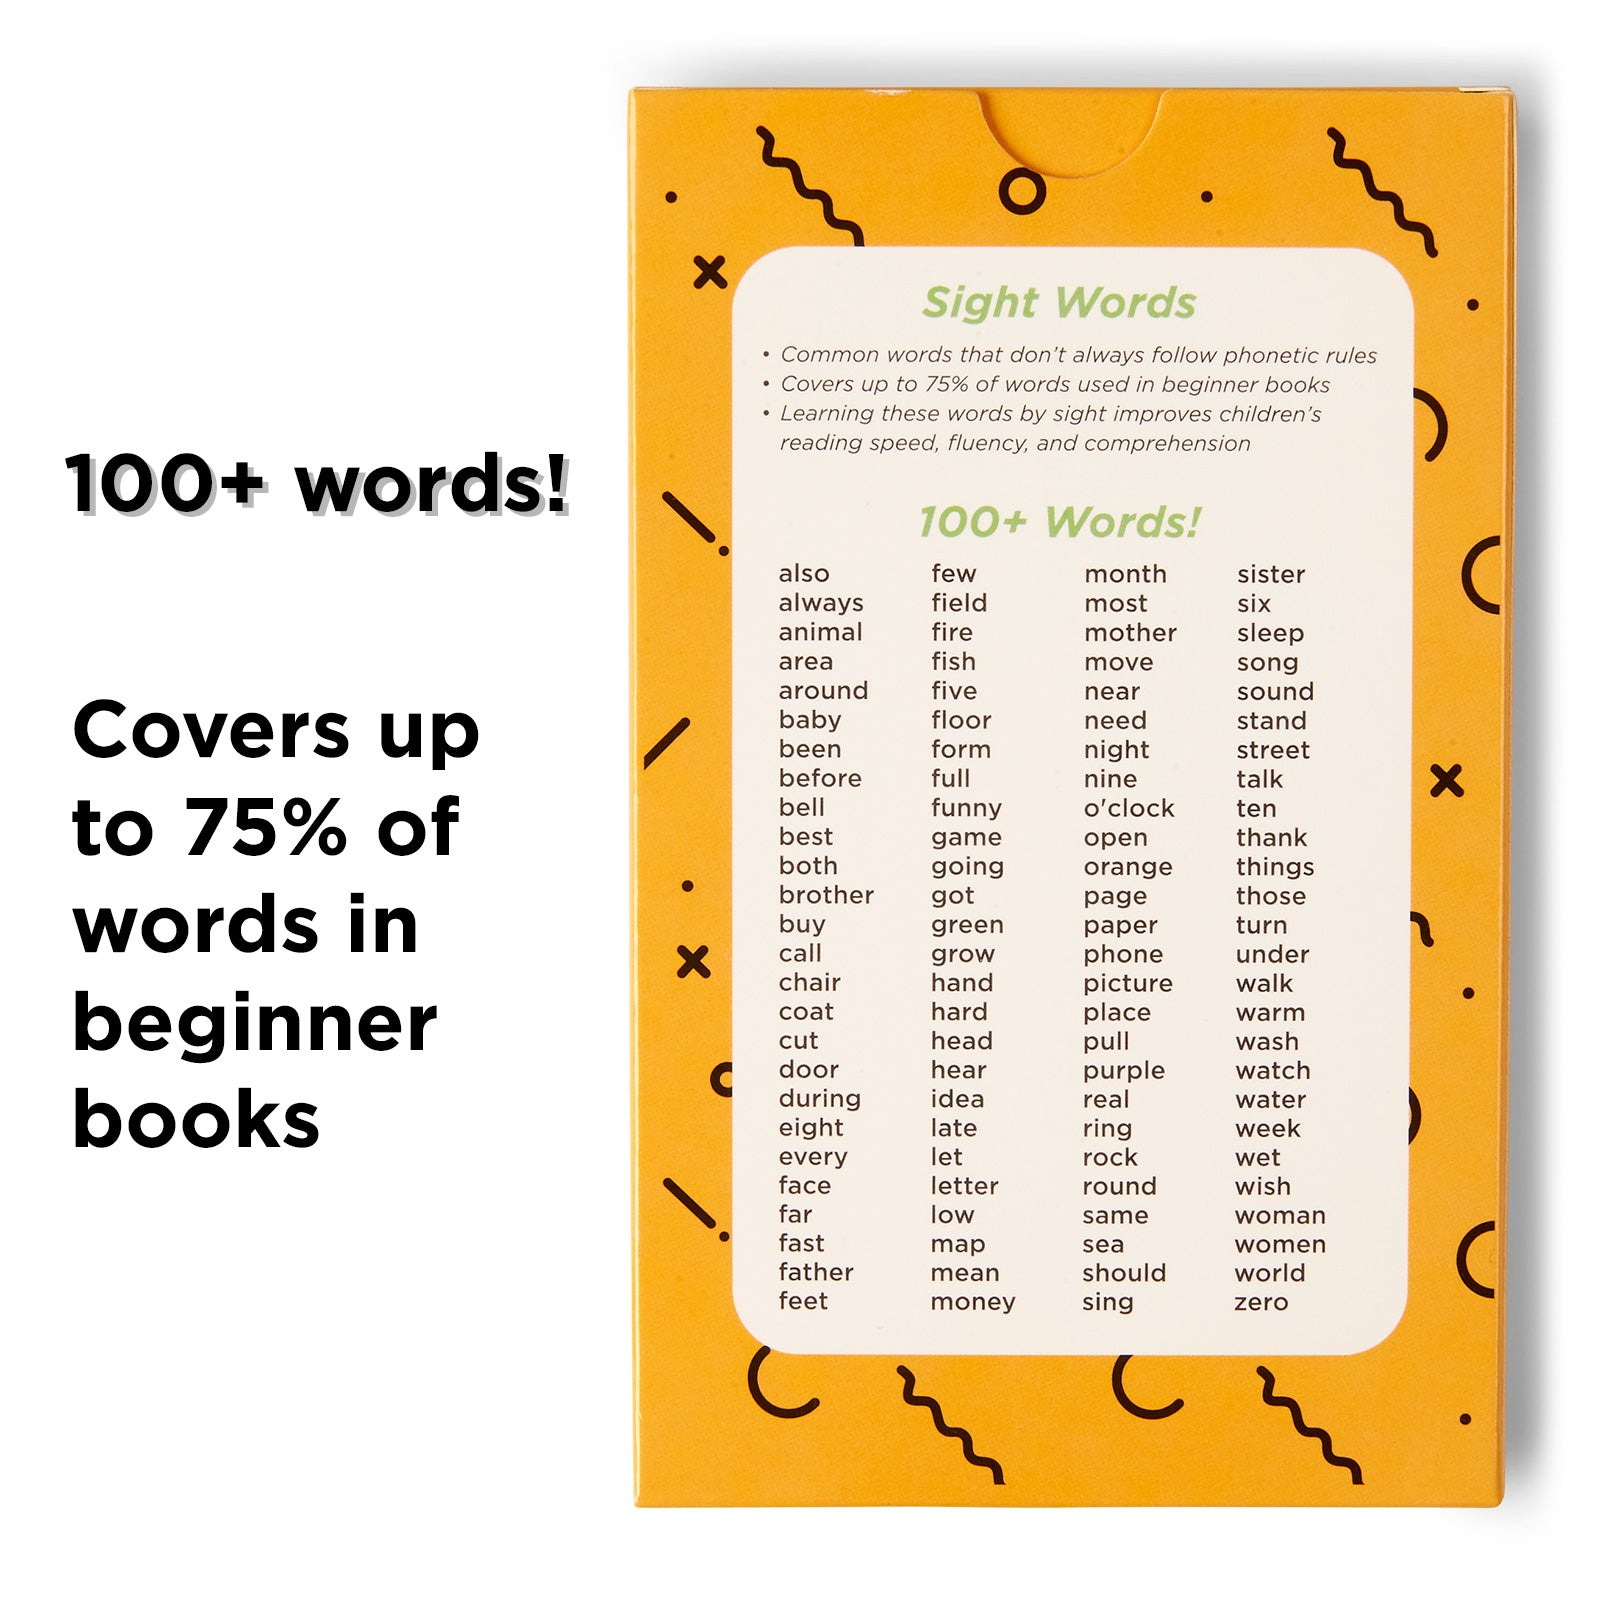 100 Sight Words for First Grade. Covers 75% of words in beginner books